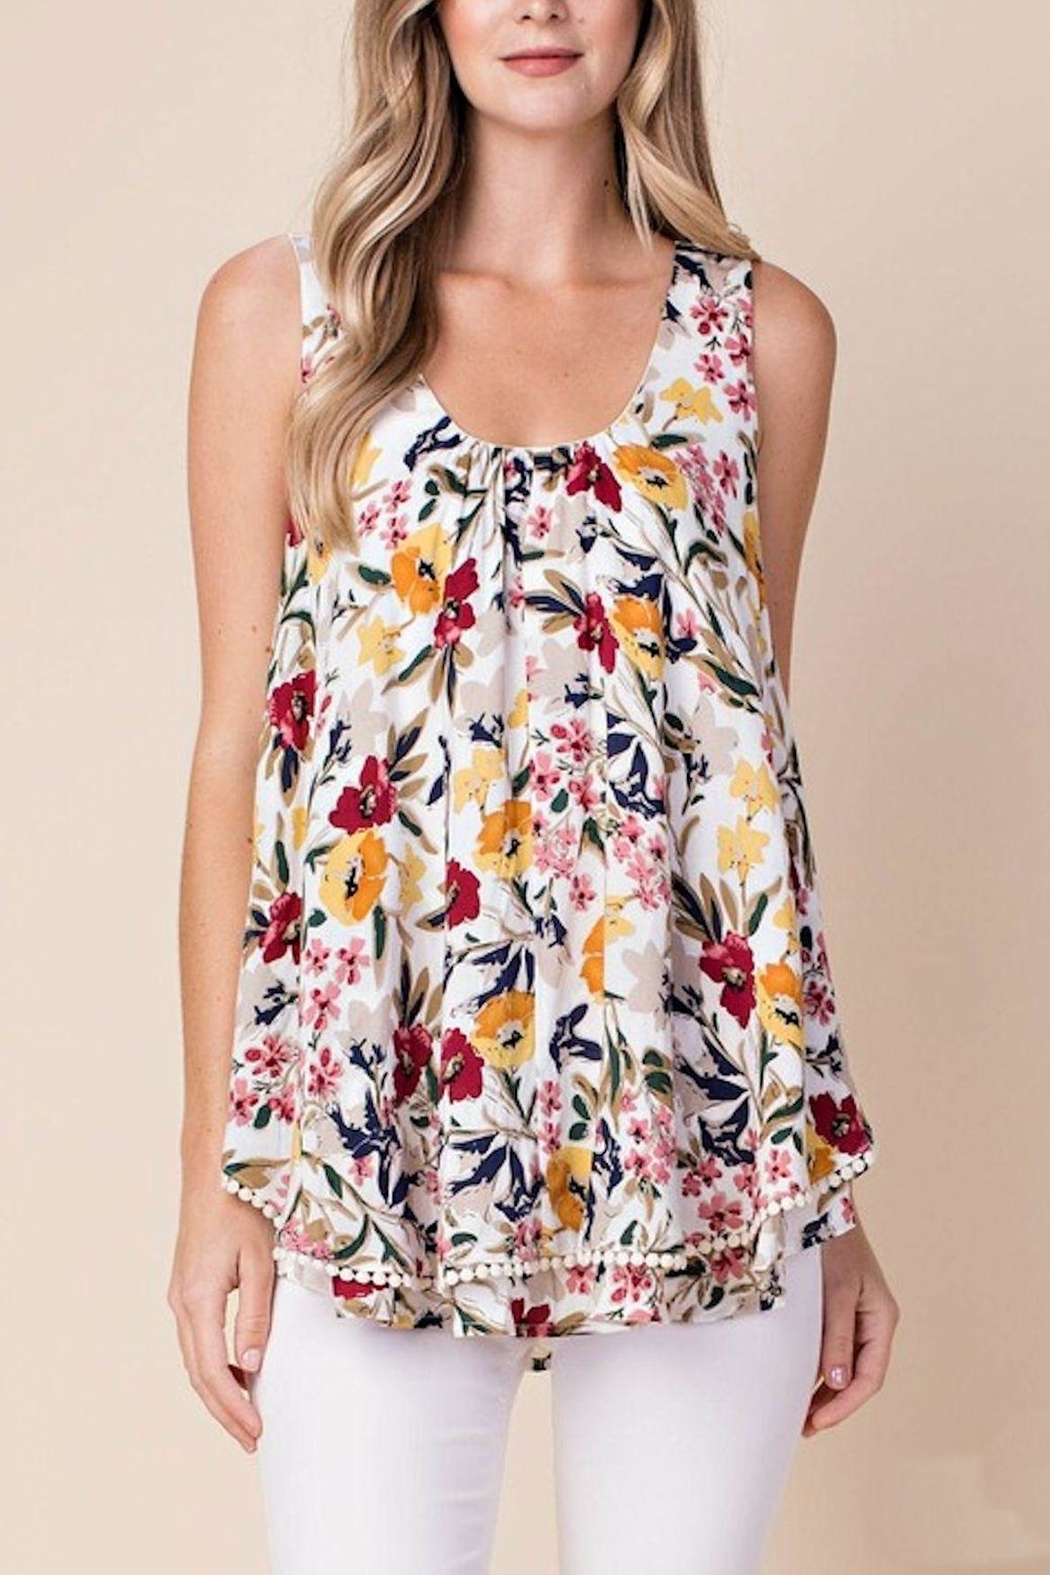 KORI AMERICA Layered Flowered Top - Front Cropped Image